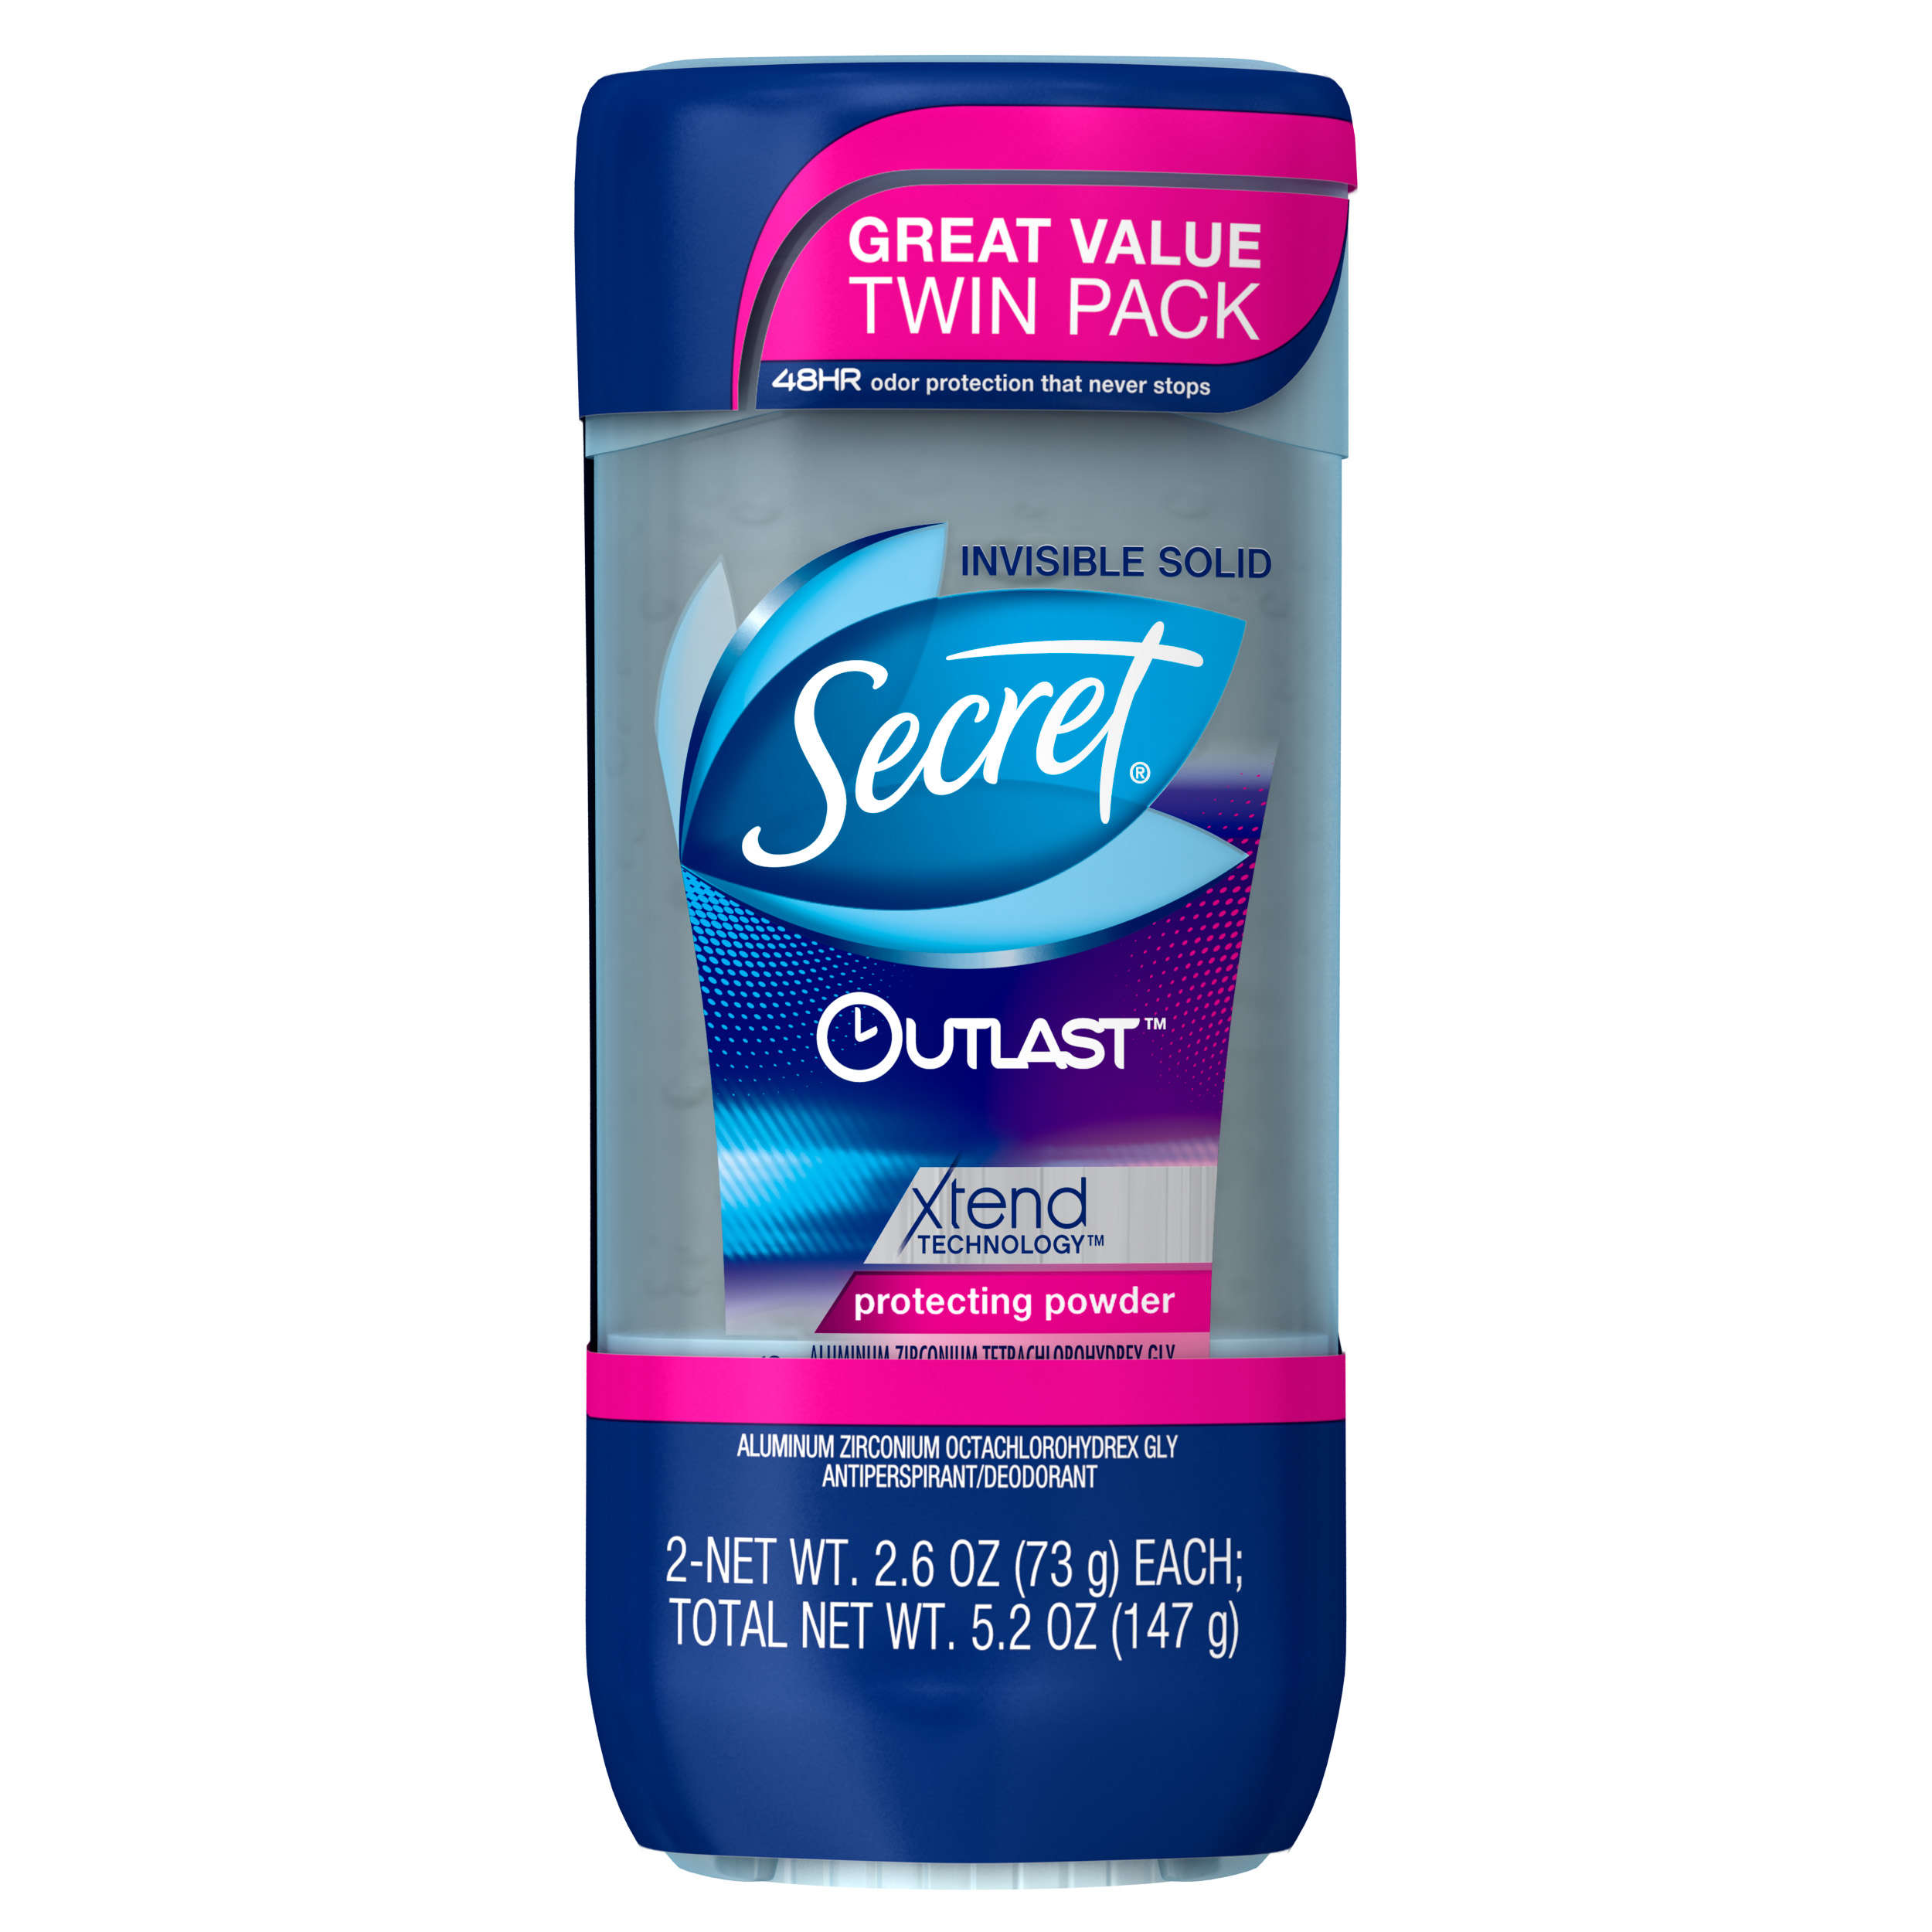 Secret Outlast Xtend Antiperspirant Deodorant, Protecting Powder Clear Gel, 2.6 oz Twin Pack